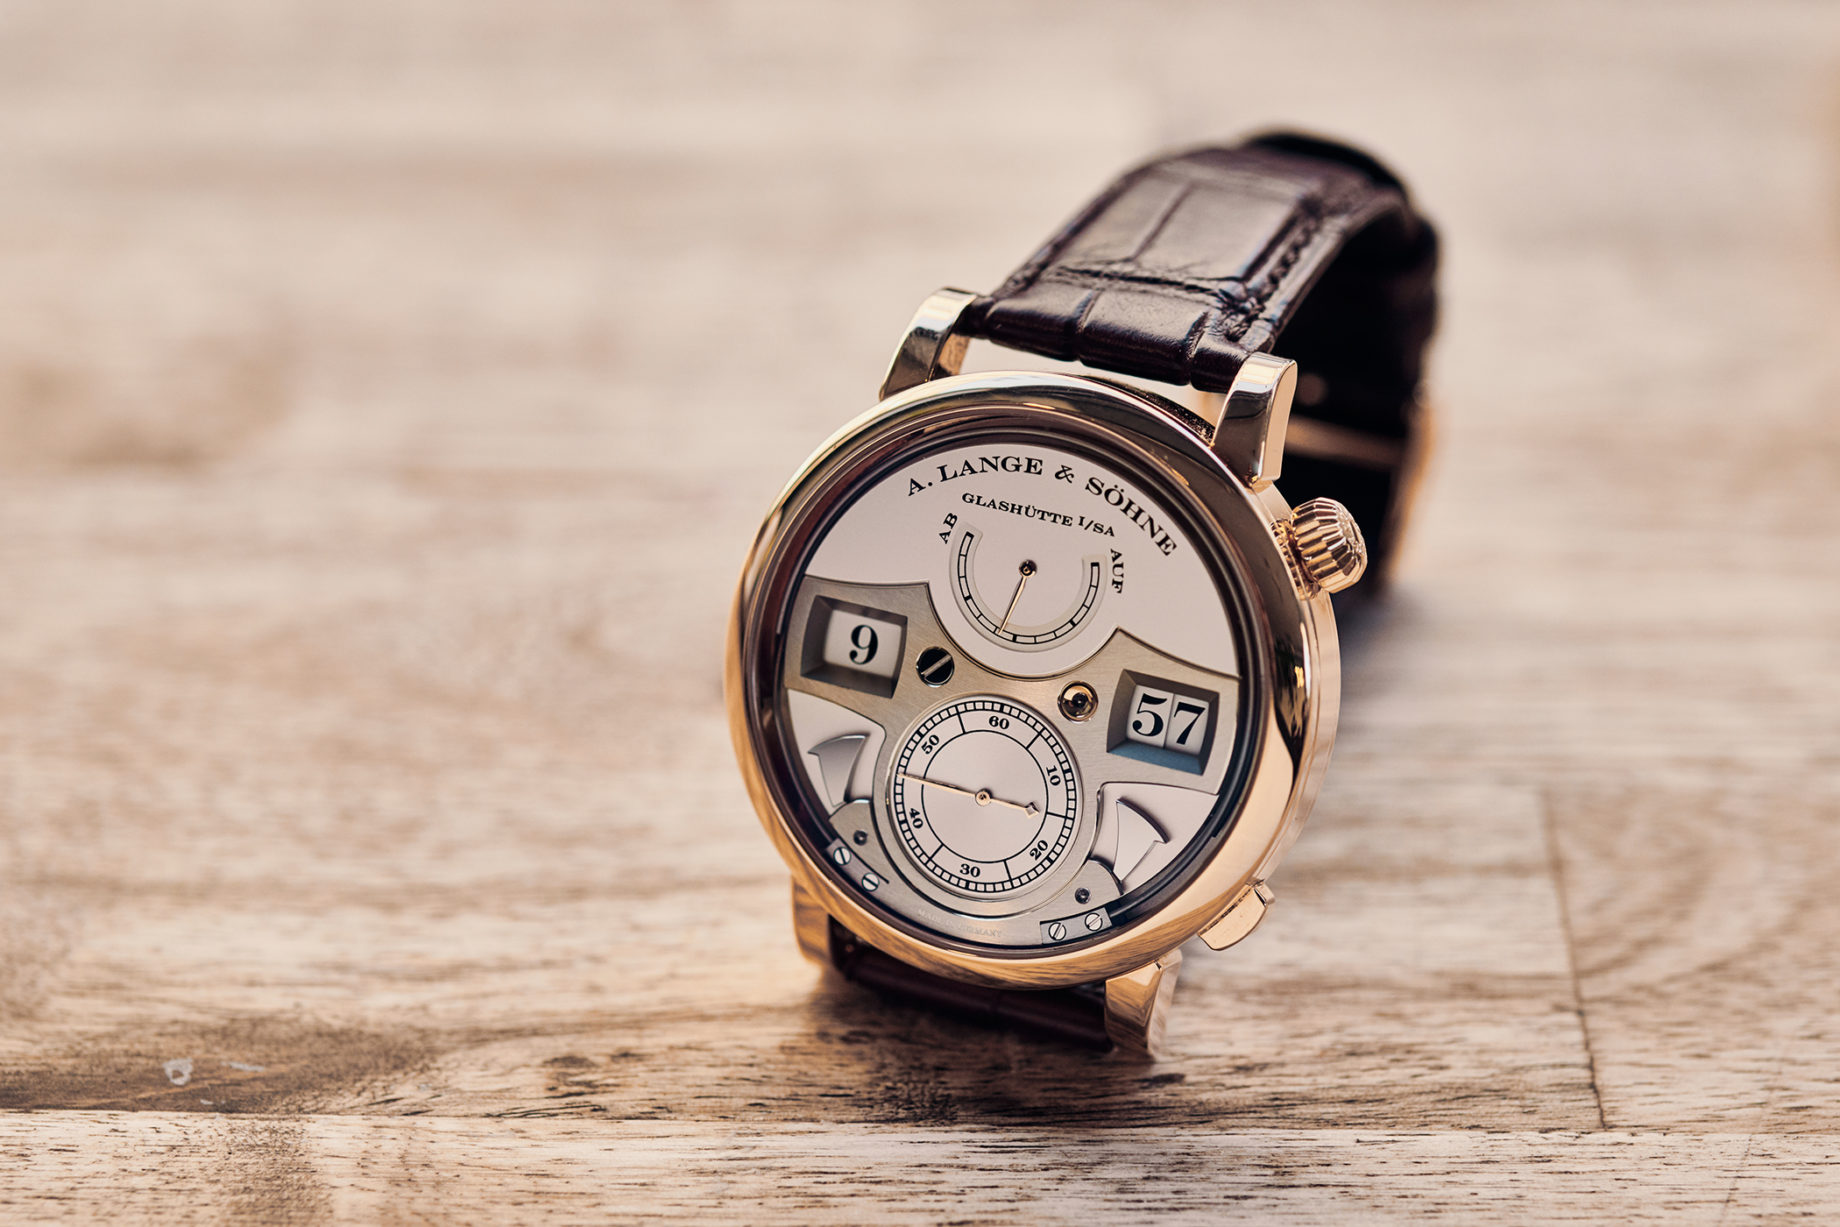 A. Lange & Söhne Zeitwerk Striking Time